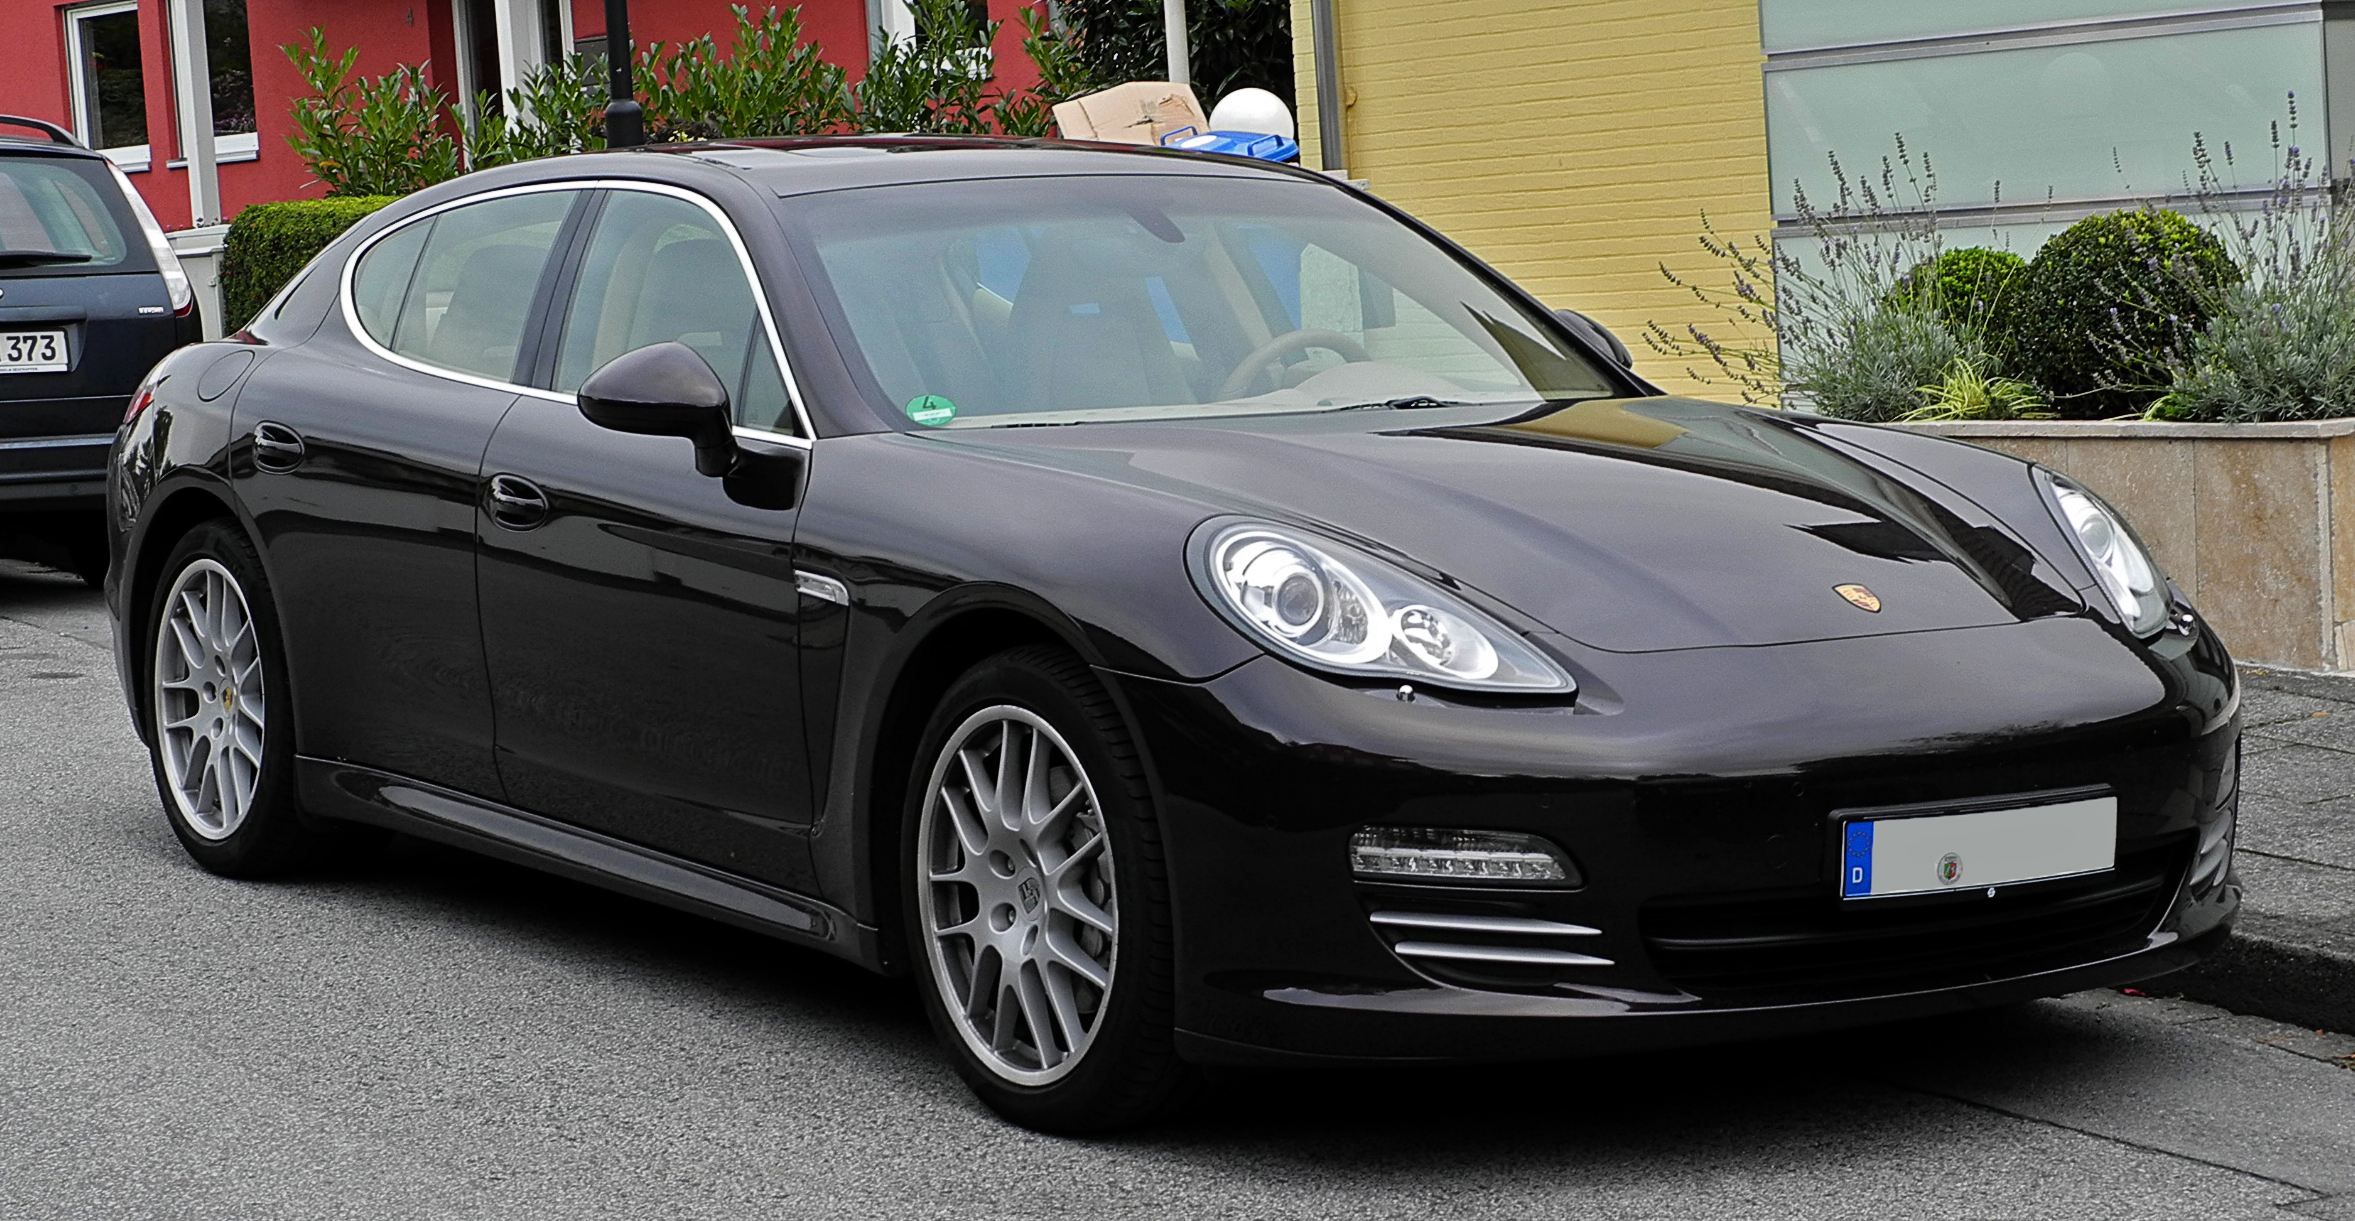 file porsche panamera 4s 970 frontansicht 20 september 2011 w wikimedia commons. Black Bedroom Furniture Sets. Home Design Ideas